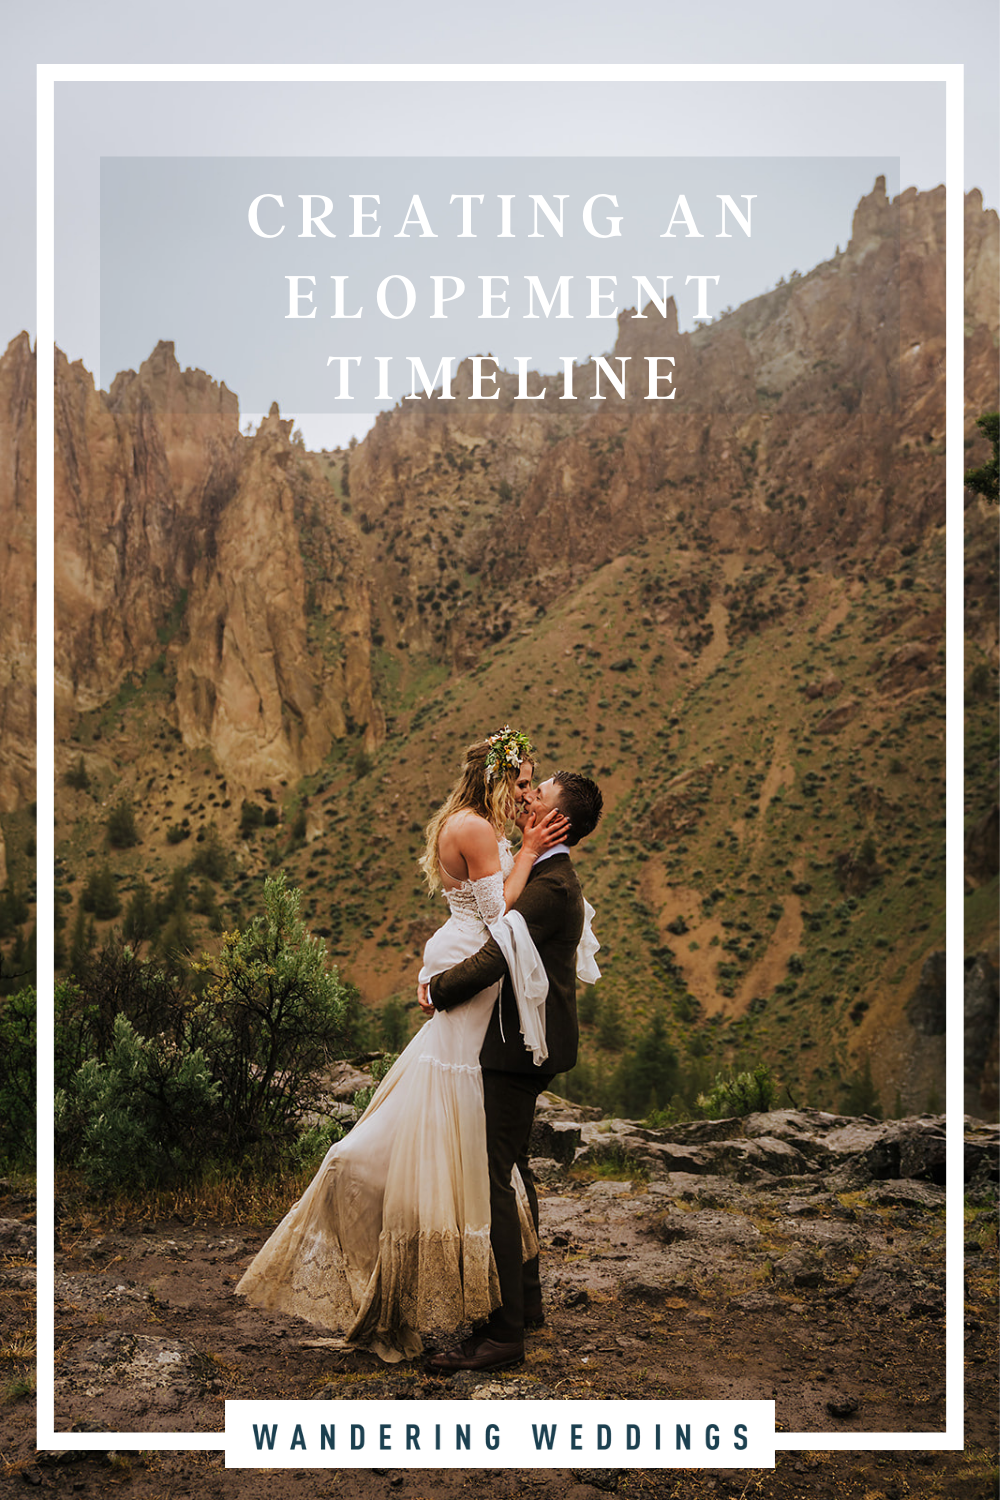 Creating an elopement timeline